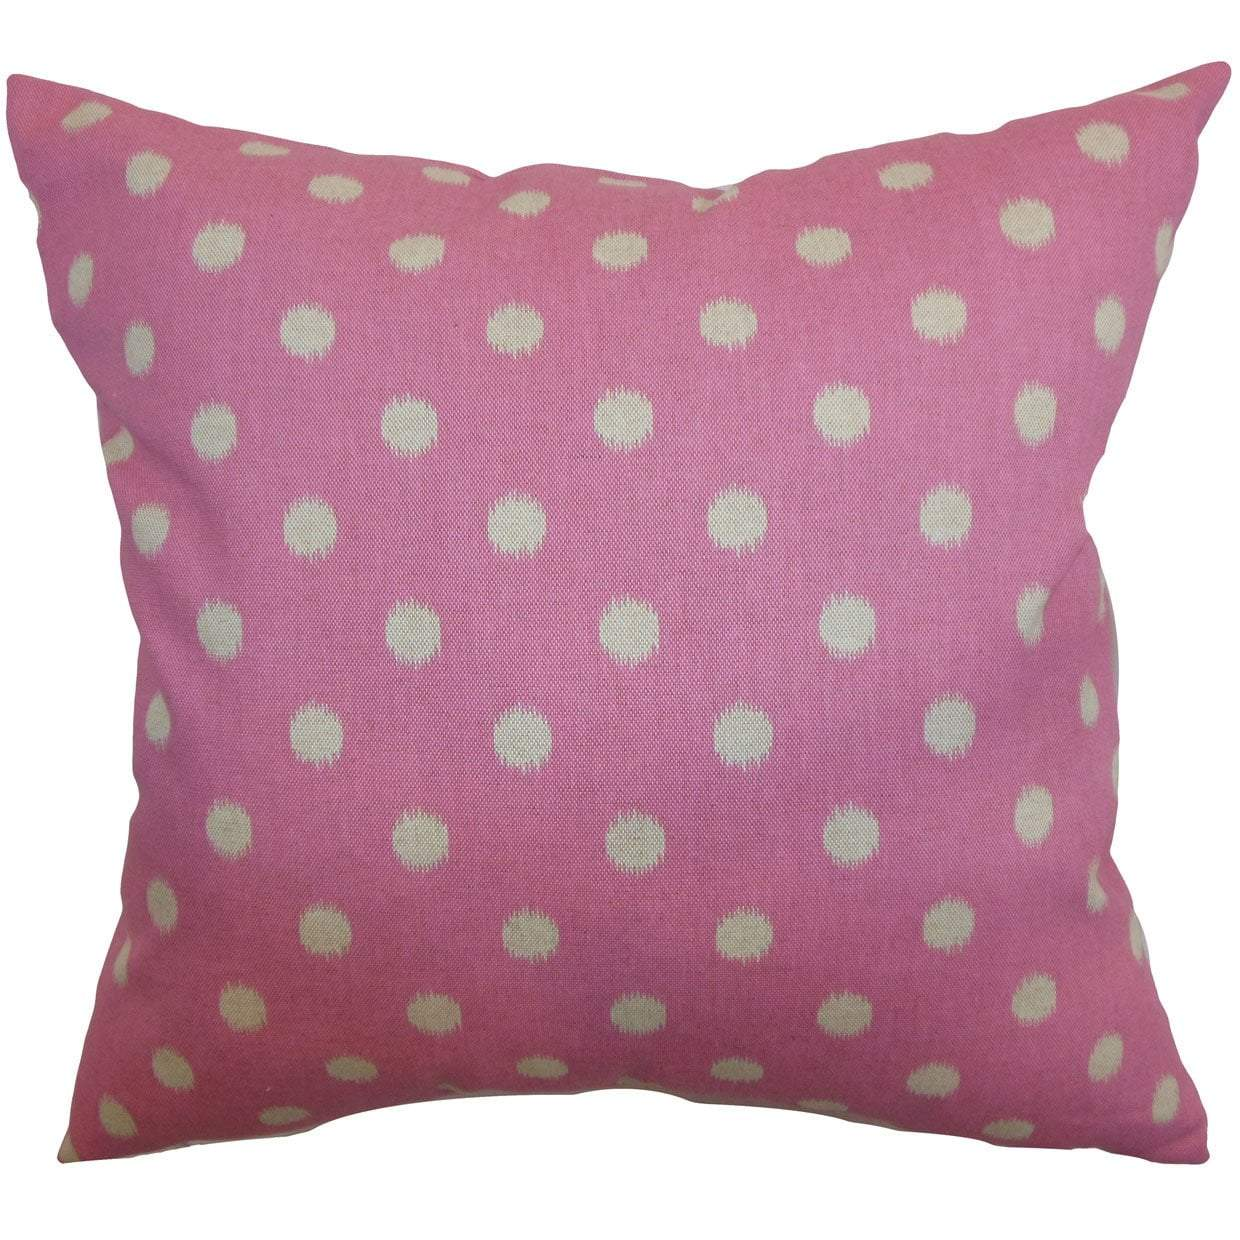 Pink Cotton Polka Dot Contemporary Throw Pillow Cover